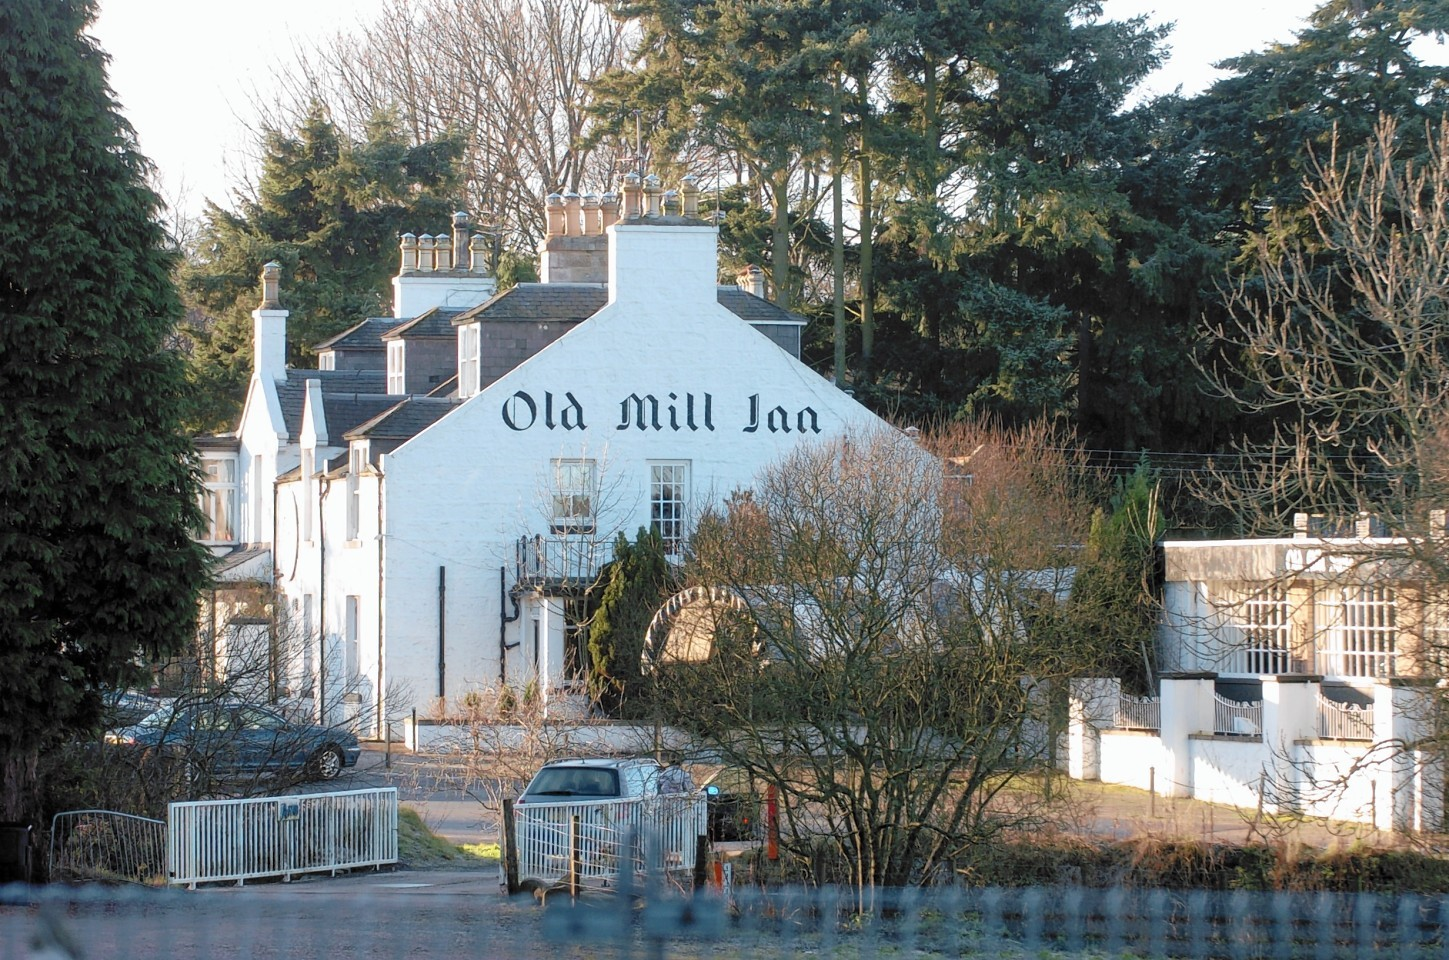 The Old Mill Inn, in Maryculter